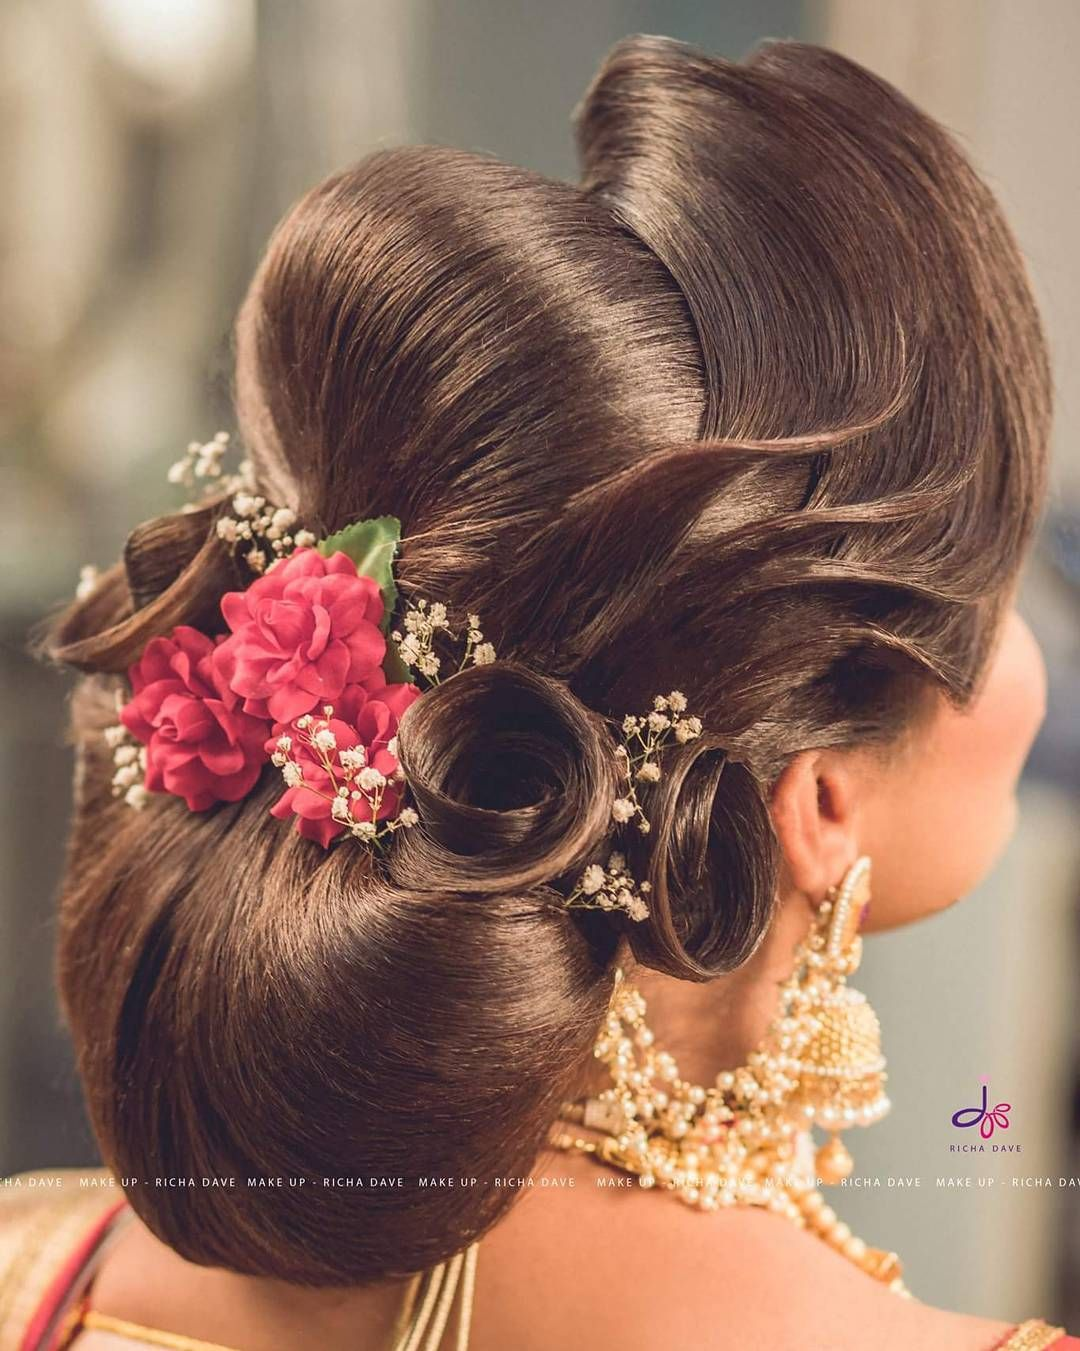 Bridal Hairstyle Https Www Wishnwed Com Blog Bridal Hairstyles For The Modern Indian Bride Hair Styles Indian Bridal Hairstyles Bridal Hairdo